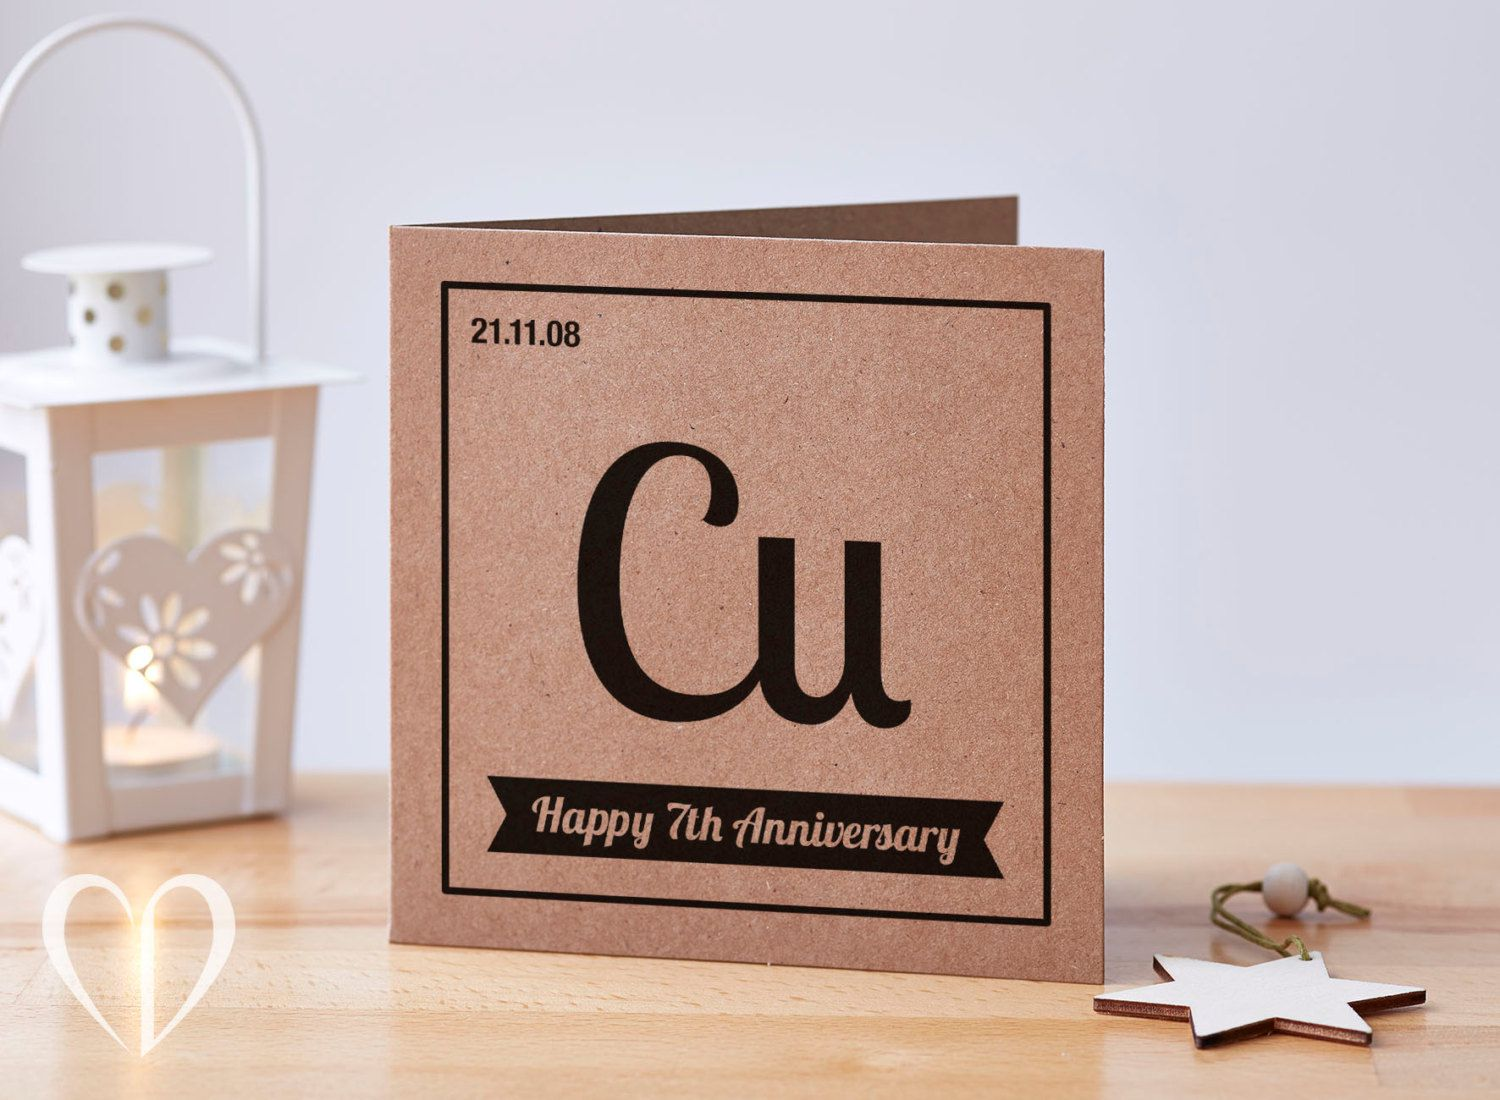 Gifts For 7th Wedding Anniversary: 7th Wedding Anniversary Gift Ideas